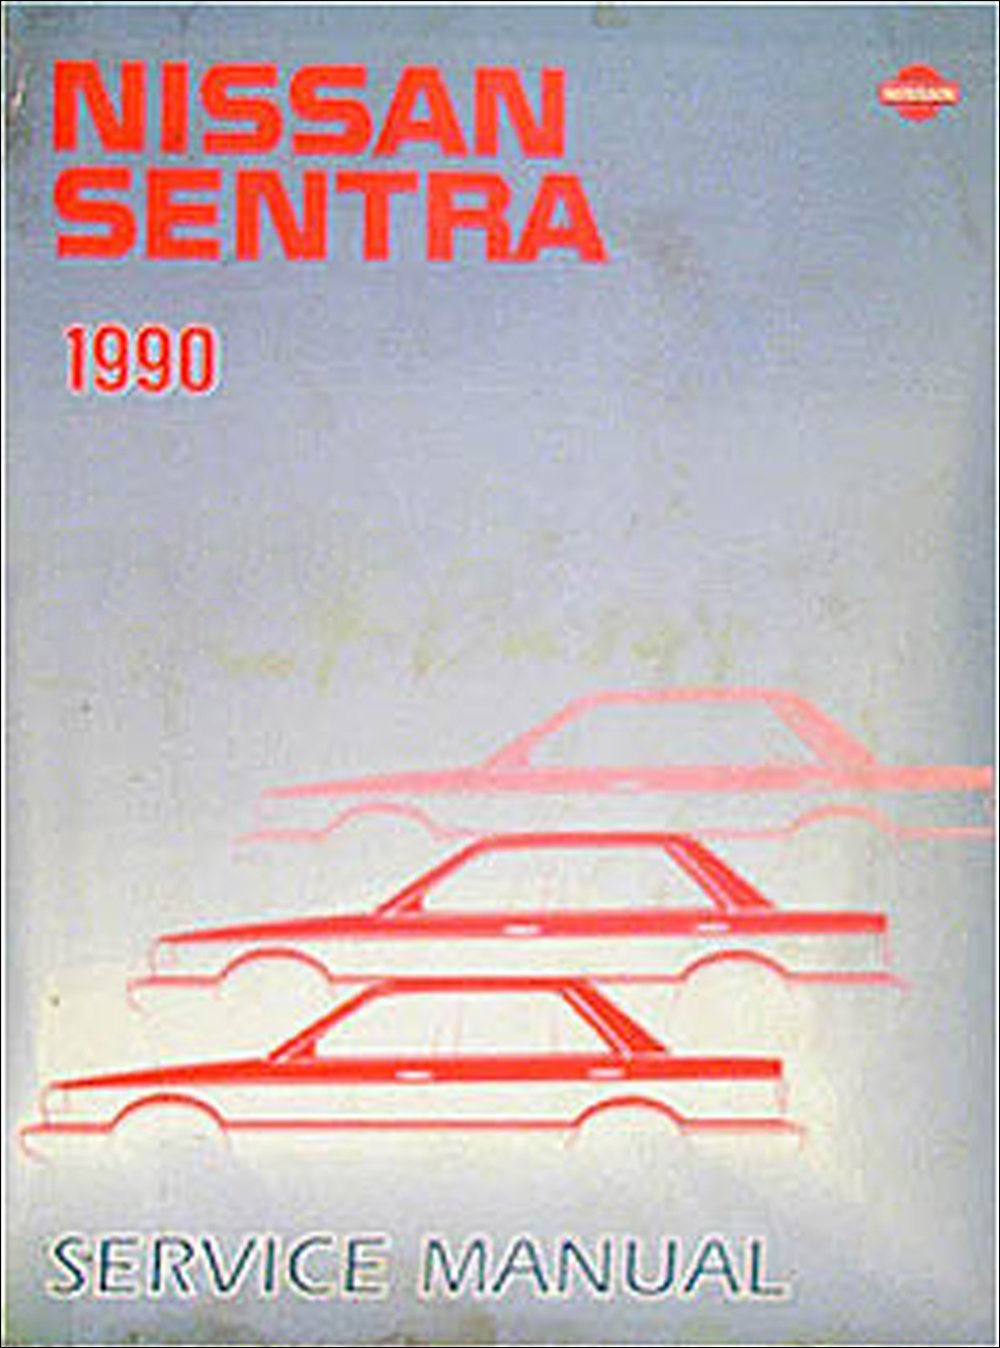 1990 Nissan Sentra Factory Service Manual(Model B12 Series): NIssan:  Amazon.com: Books